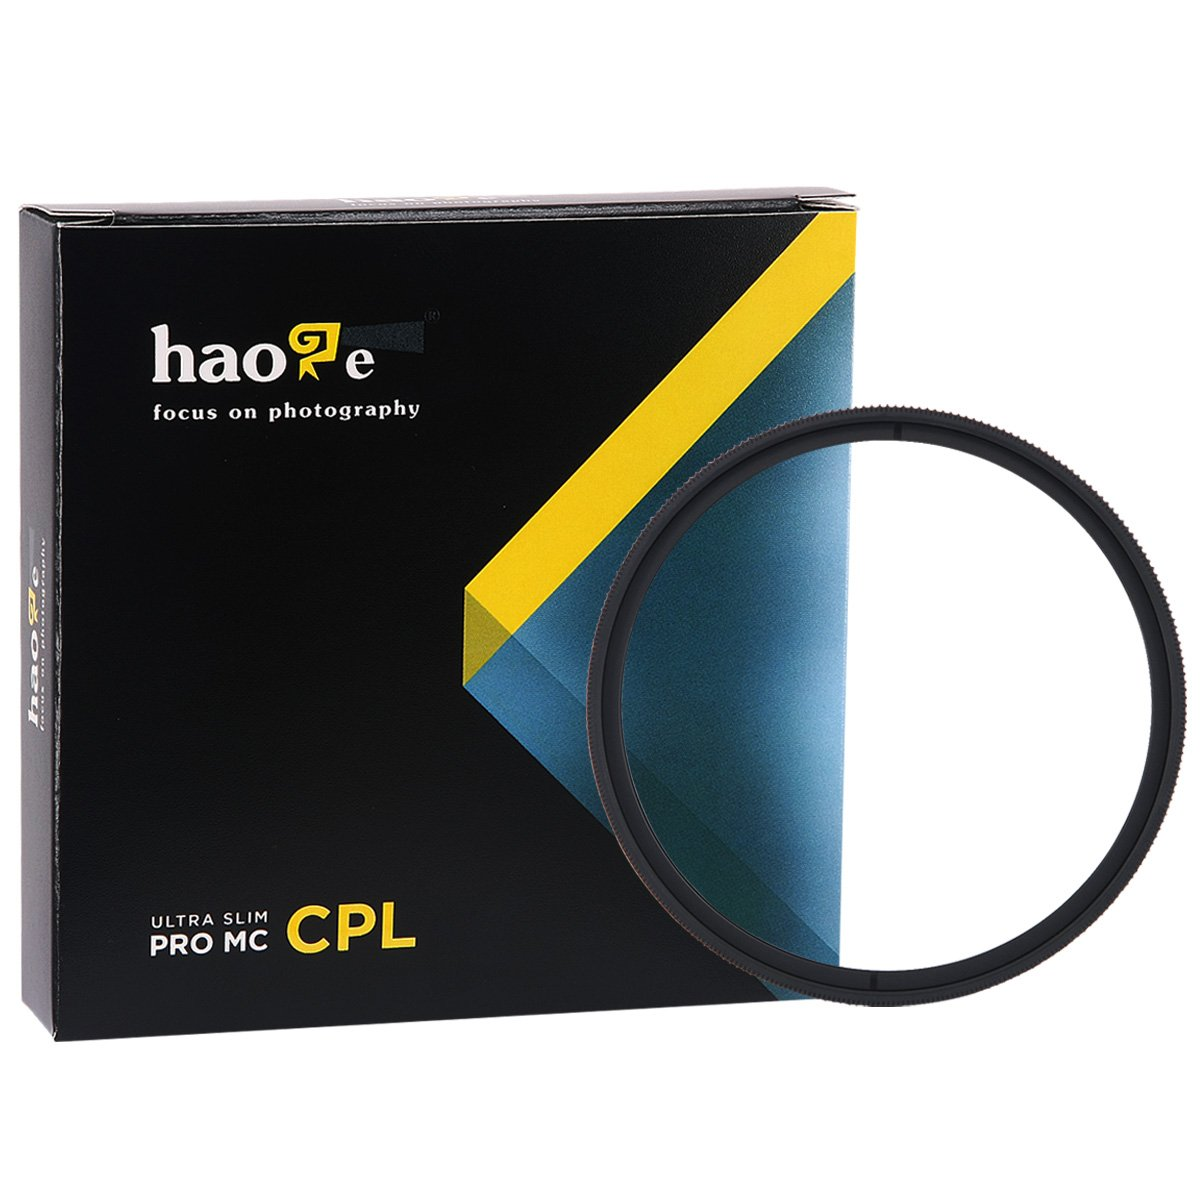 Haoge 49mm MC CPL Multicoated Circular Polarizer Polarizing Lens Filter for Canon Nikon Sony Minolta Pentax Olympus Panasonic Leica Zeiss Tamron Digital Camera DSLR Lens CPL-49